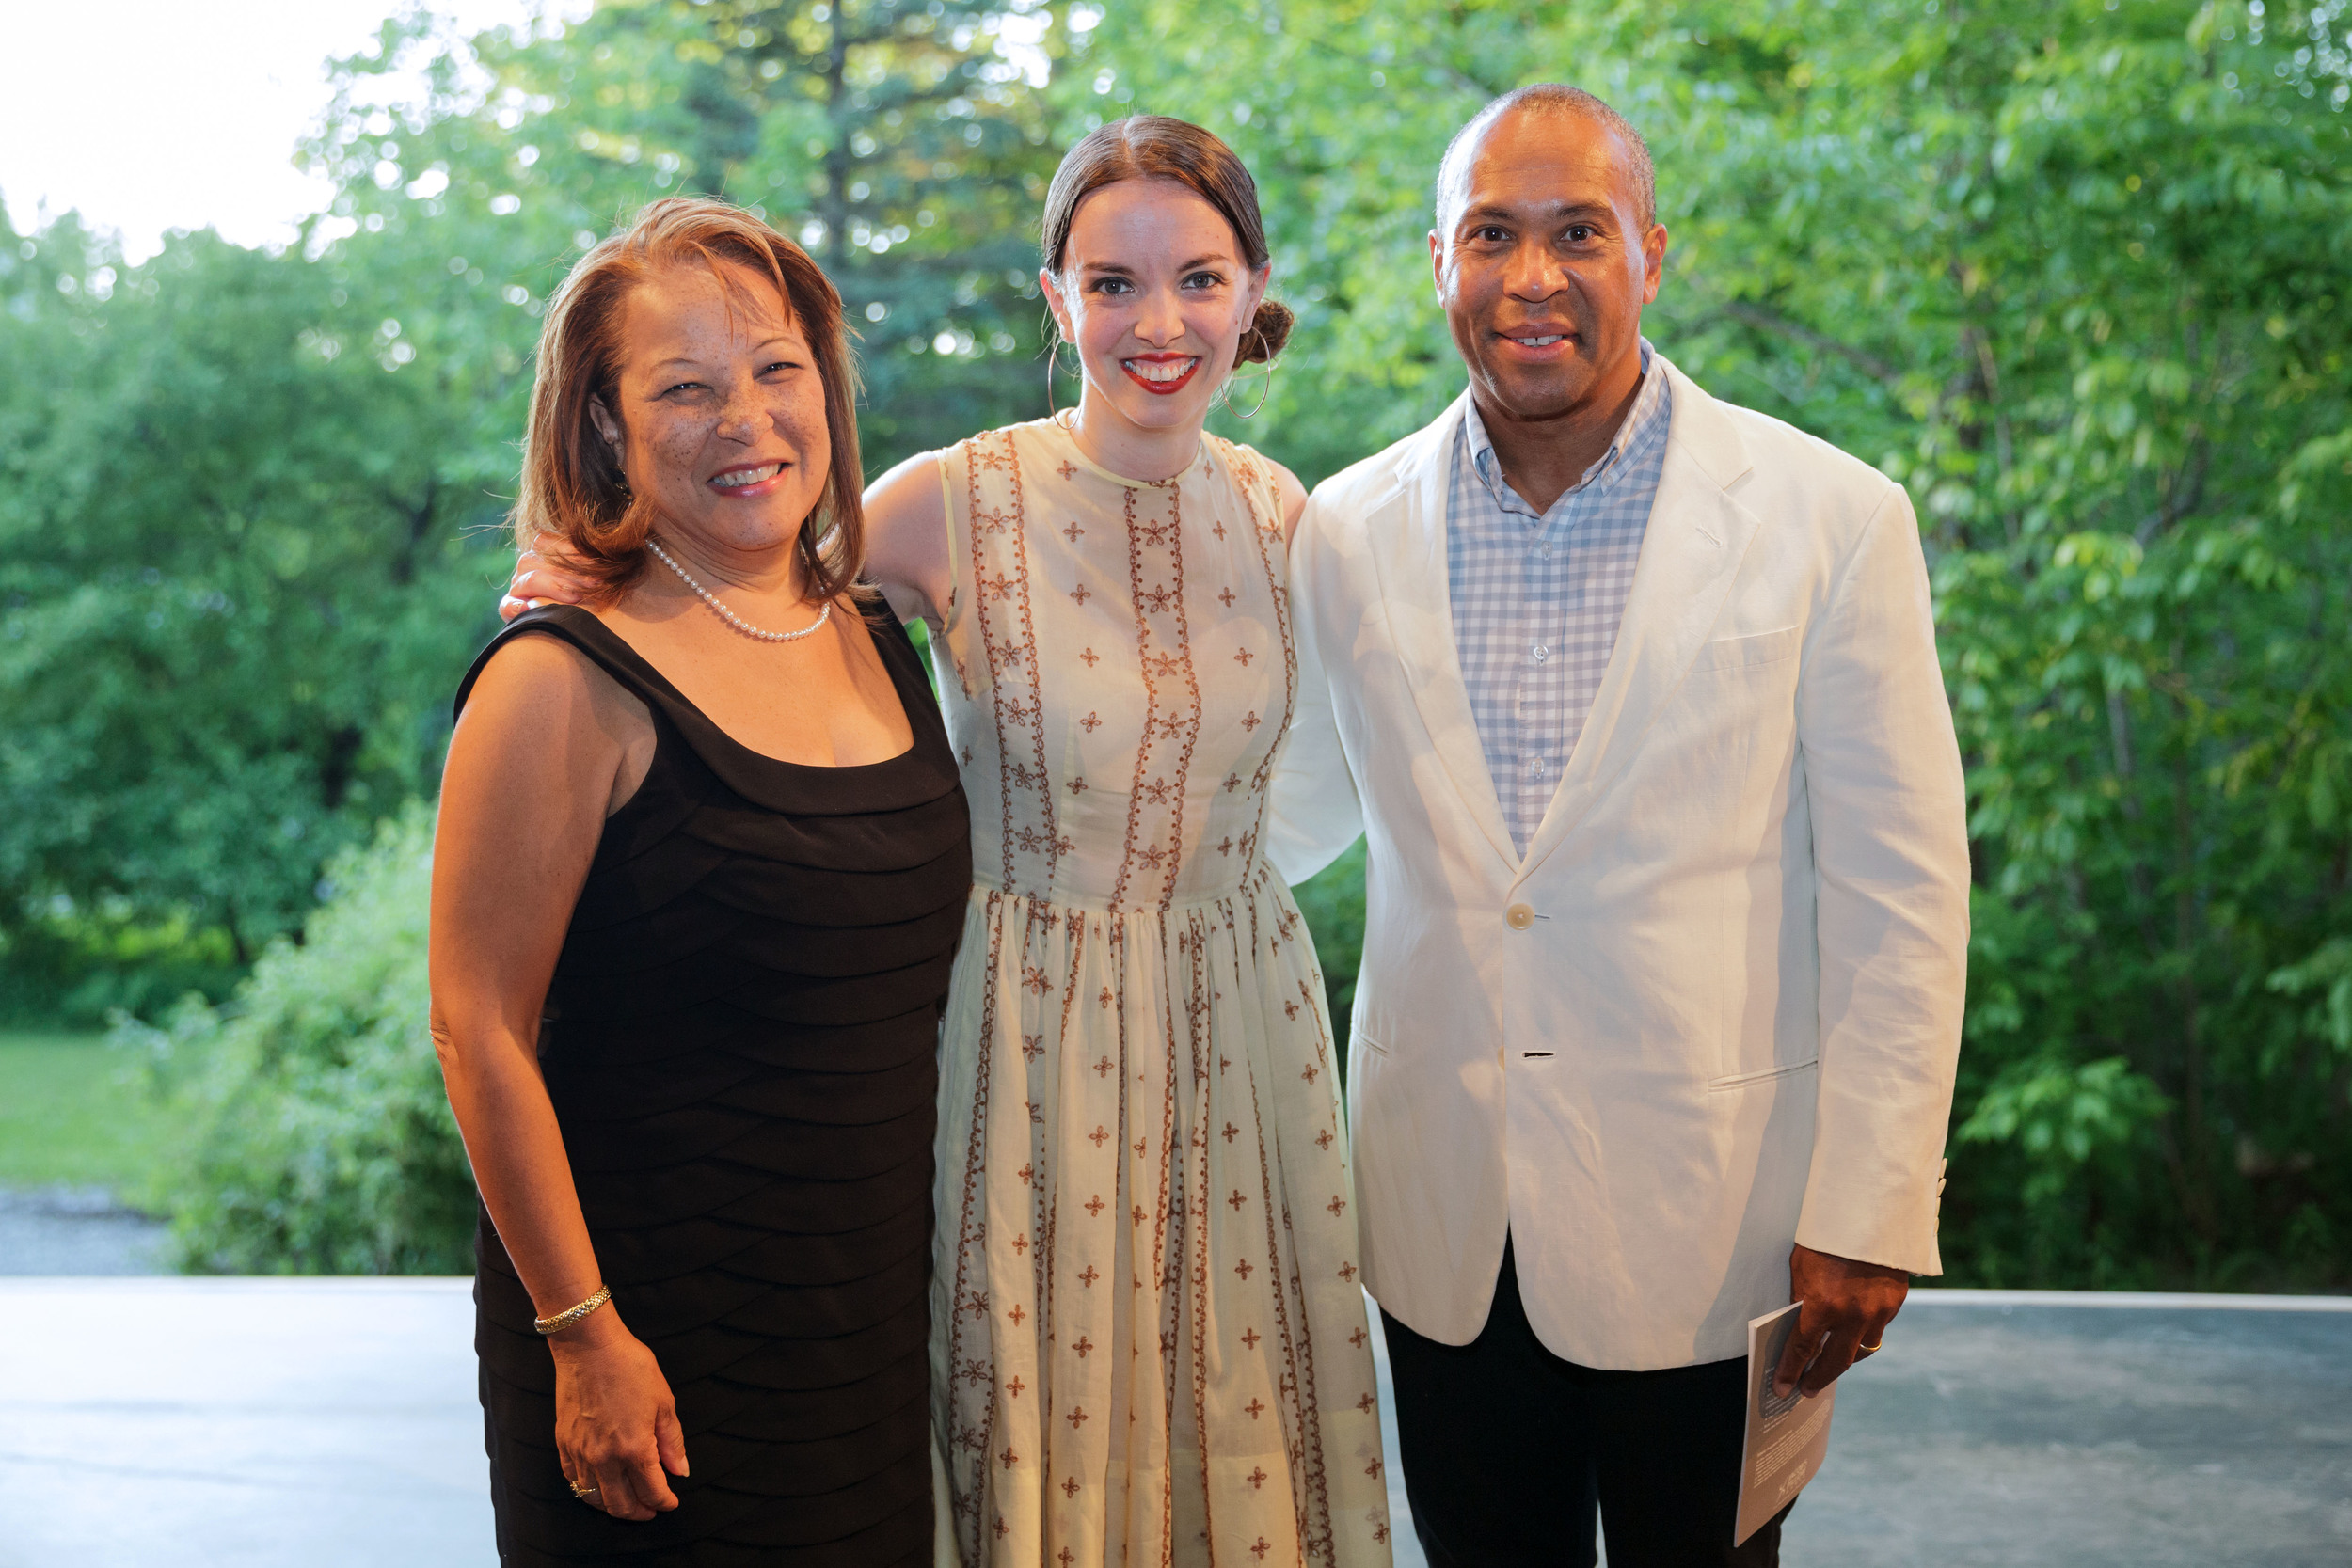 PHOTO CAPTION: First Lady Diane Patrick and Governor of Massachusetts Deval Patrick   backstage with 2013 Jacob's Pillow Dance Award Winner Michelle Dorrance.   Photographer Karli Cadel; courtesy of Jacob's Pillow Dance